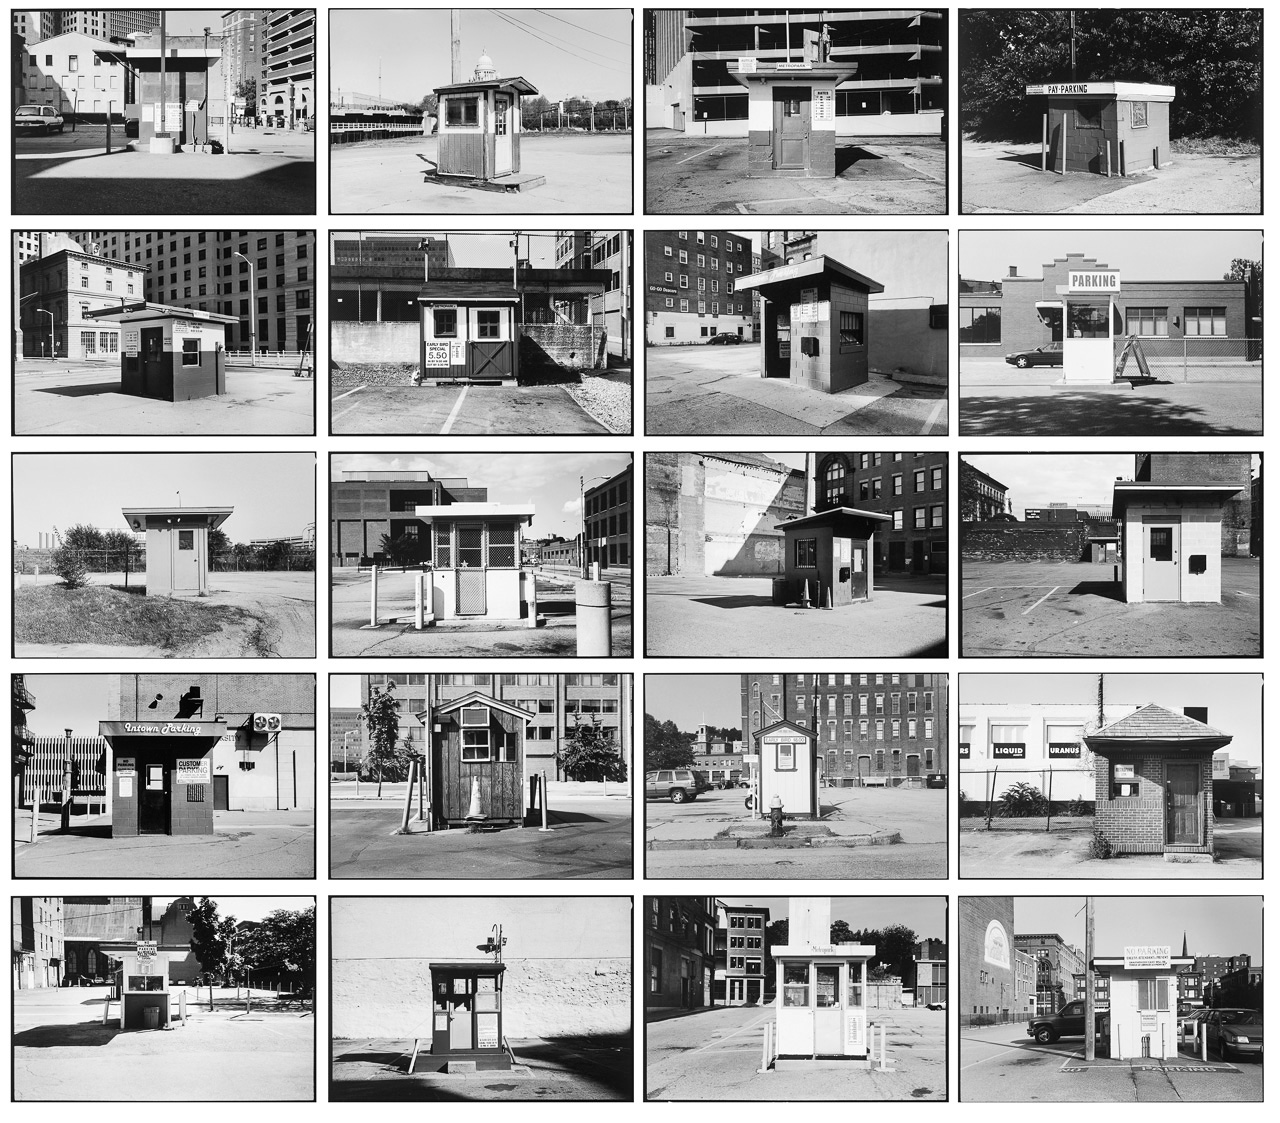 20 Parking Shacks in Downtown Providence, RI [2000-2006]